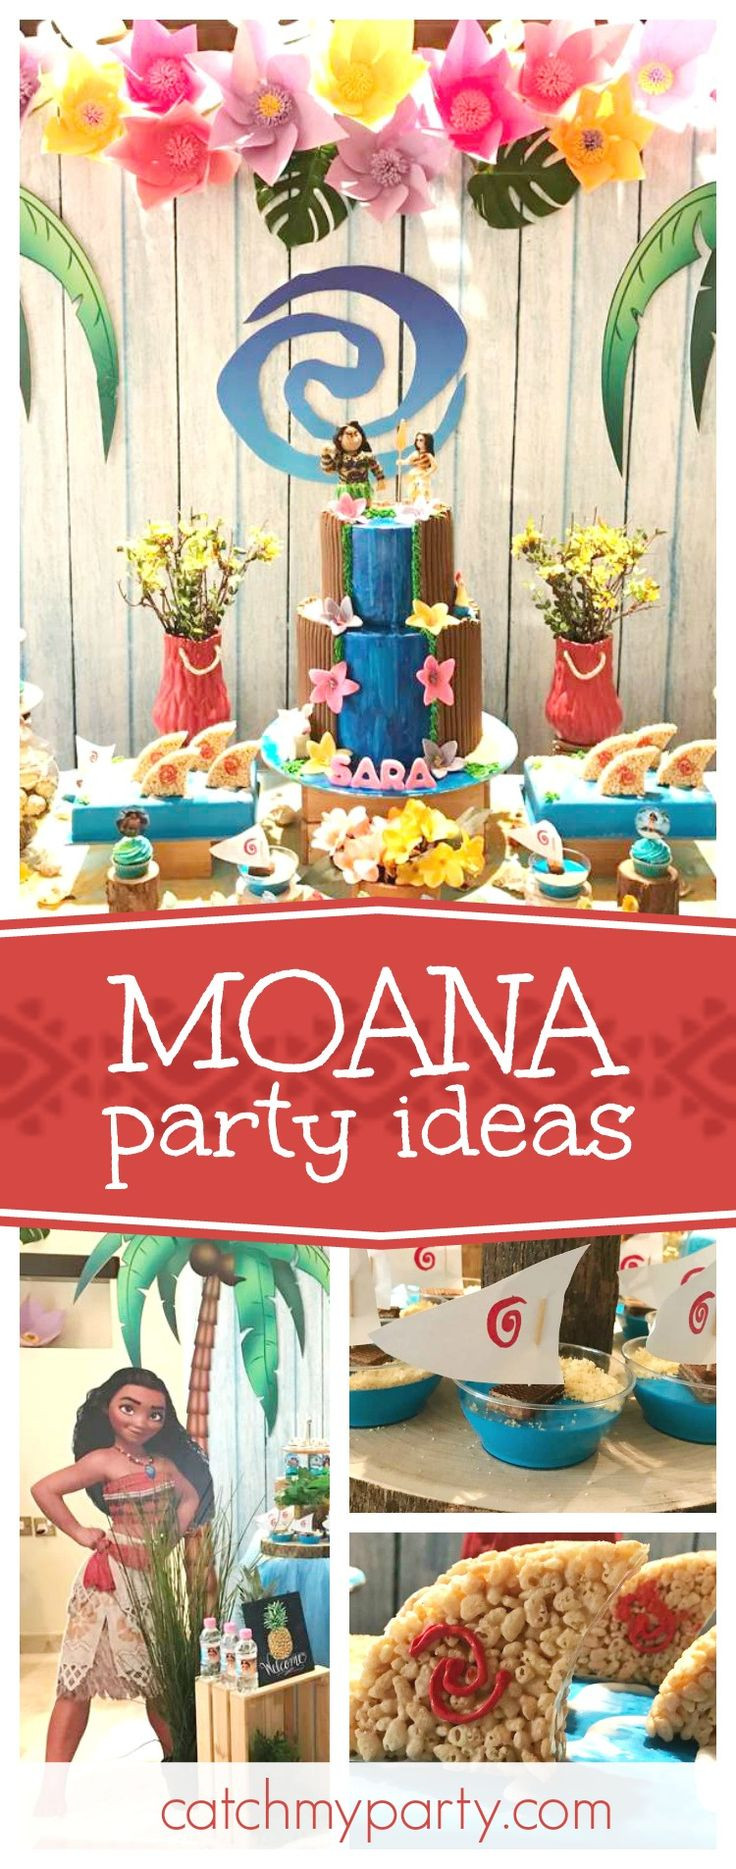 Best ideas about Moana Birthday Party . Save or Pin 152 best Moana Birthday Party Ideas images on Pinterest Now.